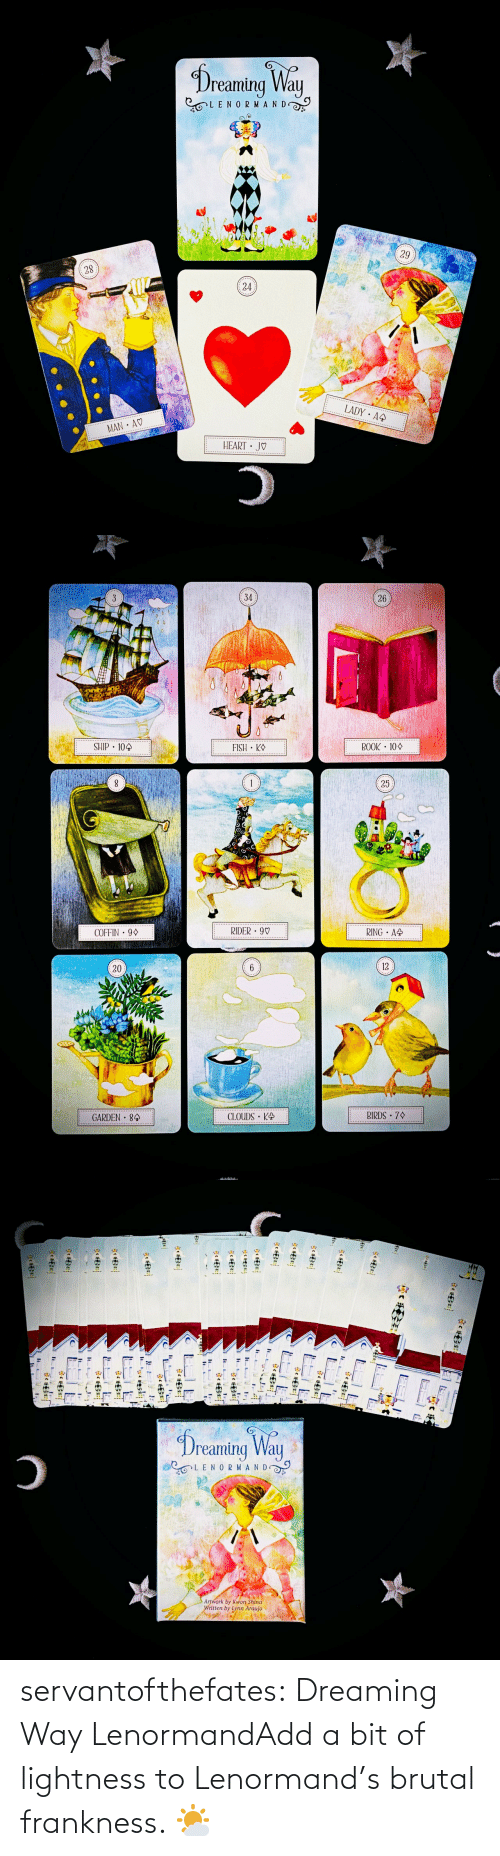 do you: servantofthefates:  Dreaming Way LenormandAdd a bit of lightness to Lenormand's brutal frankness. 🌤